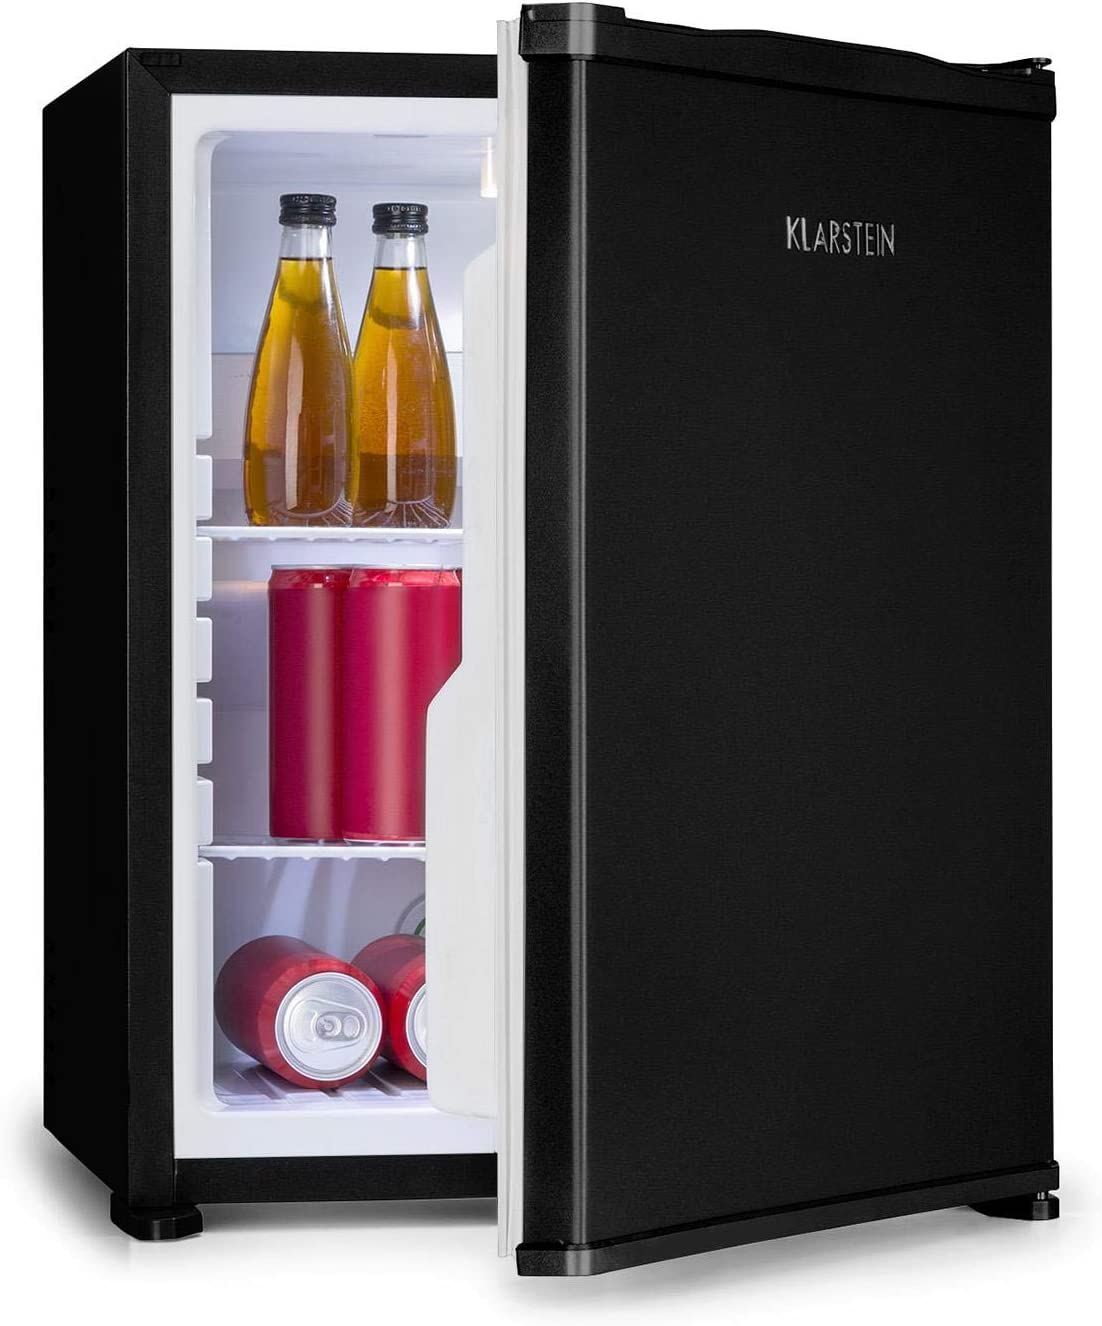 56 cm Height 2 Shelves Silent 0dB Automatic Defrost System No Frost 44 Litre Capacity Klarstein Nagano M Mini Fridge Cooling from 0-8 /° C Black Noiseless 3 Door Compartments